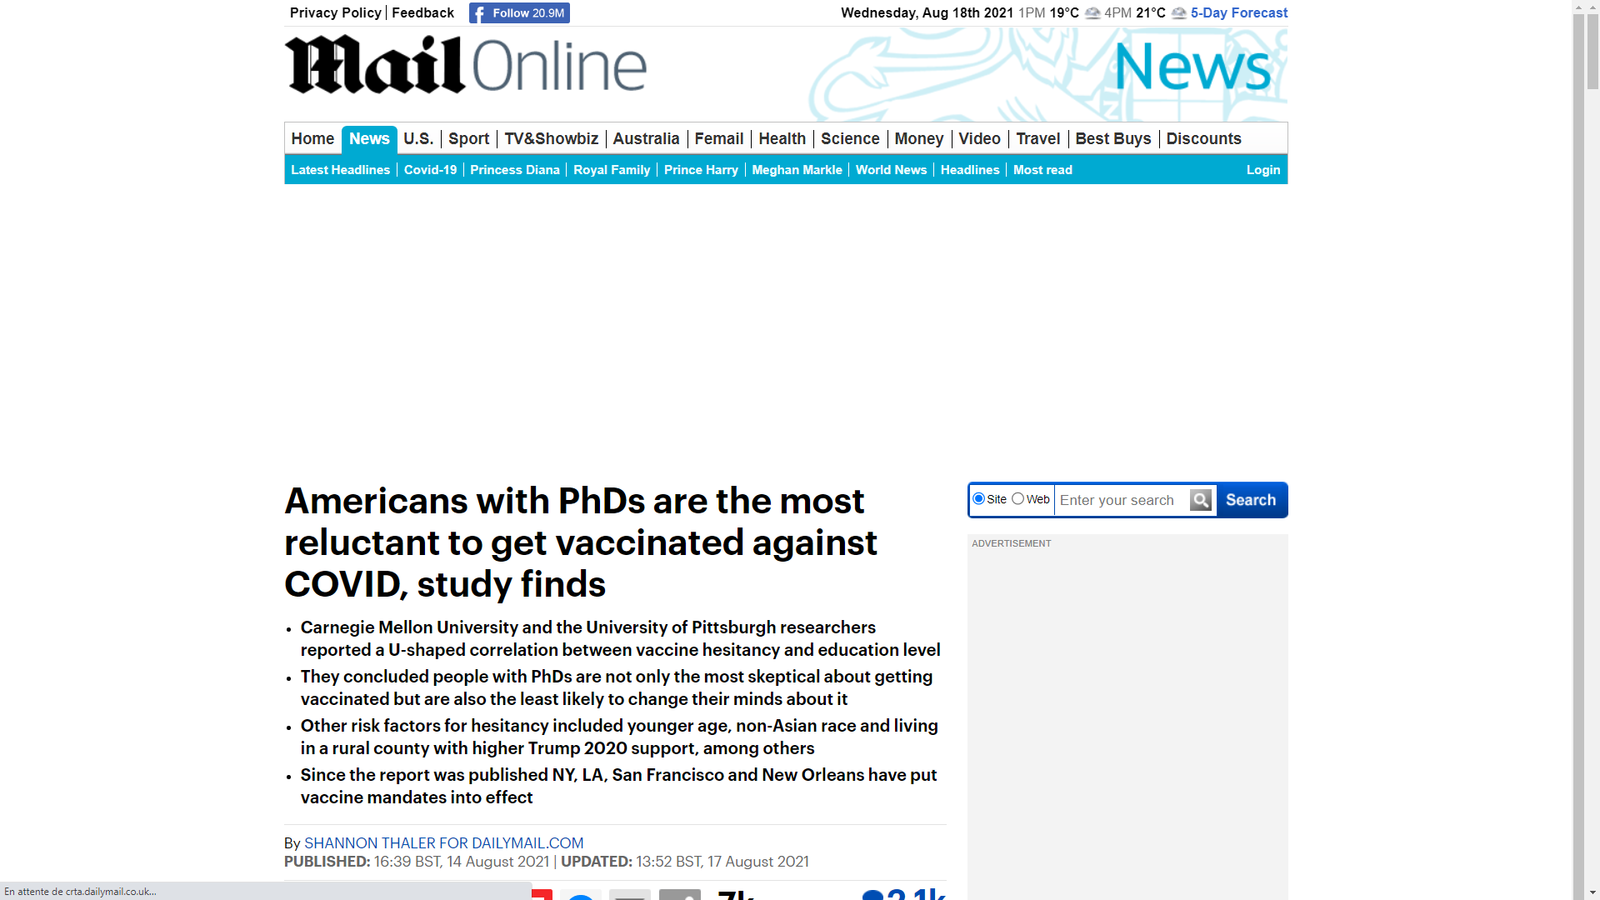 Source : https://www.dailymail.co.uk/news/article-9893465/Americans-PhDs-reluctant-vaccinated-against-COVID-study-finds.html